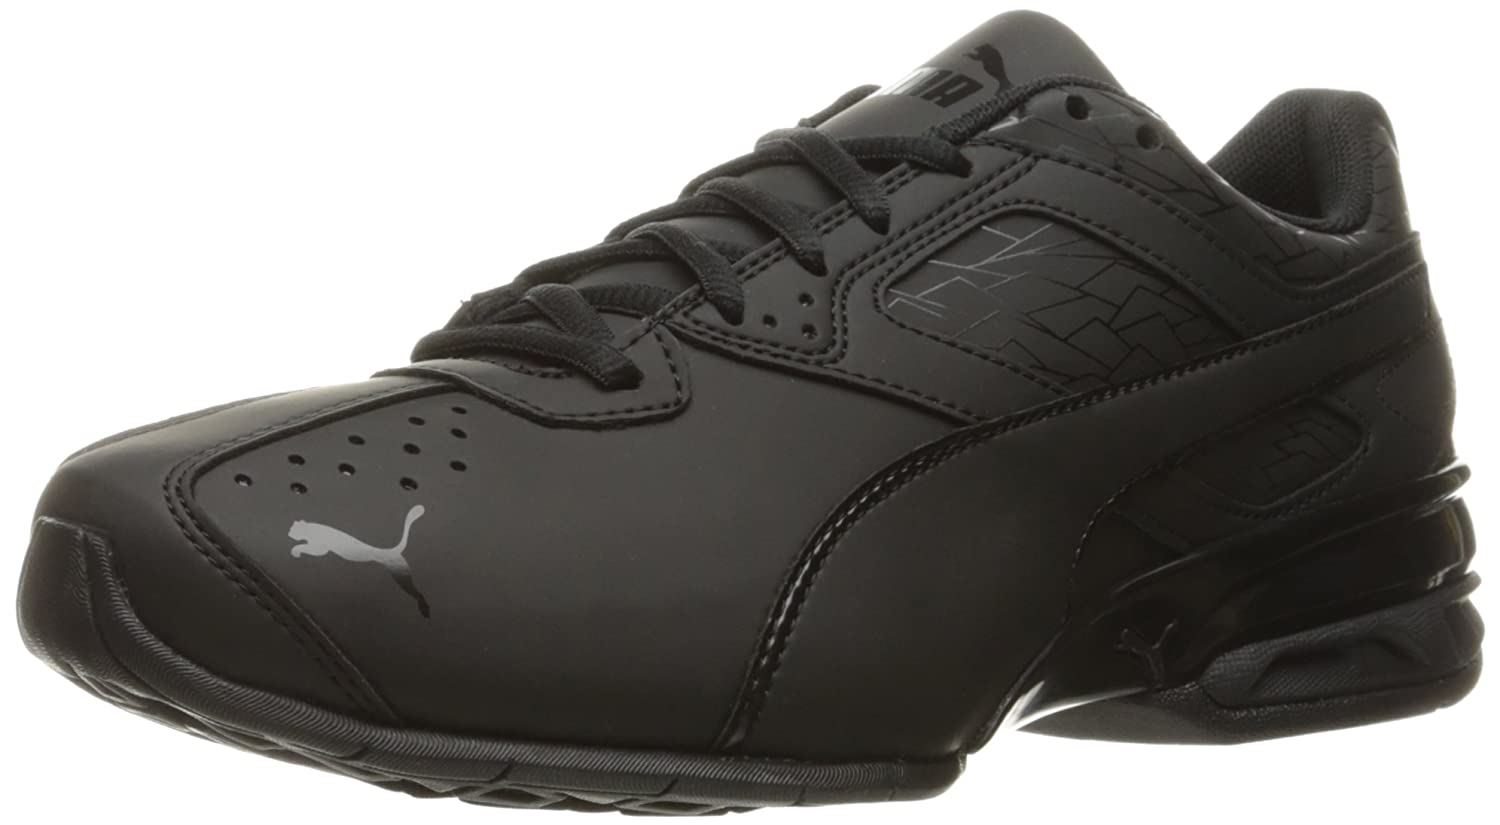 PUMA Men's Tazon 6 Fracture 7 FM Cross-Trainer Shoe B01C3LK7JW 7 Fracture D(M) US|Puma Black d803d1